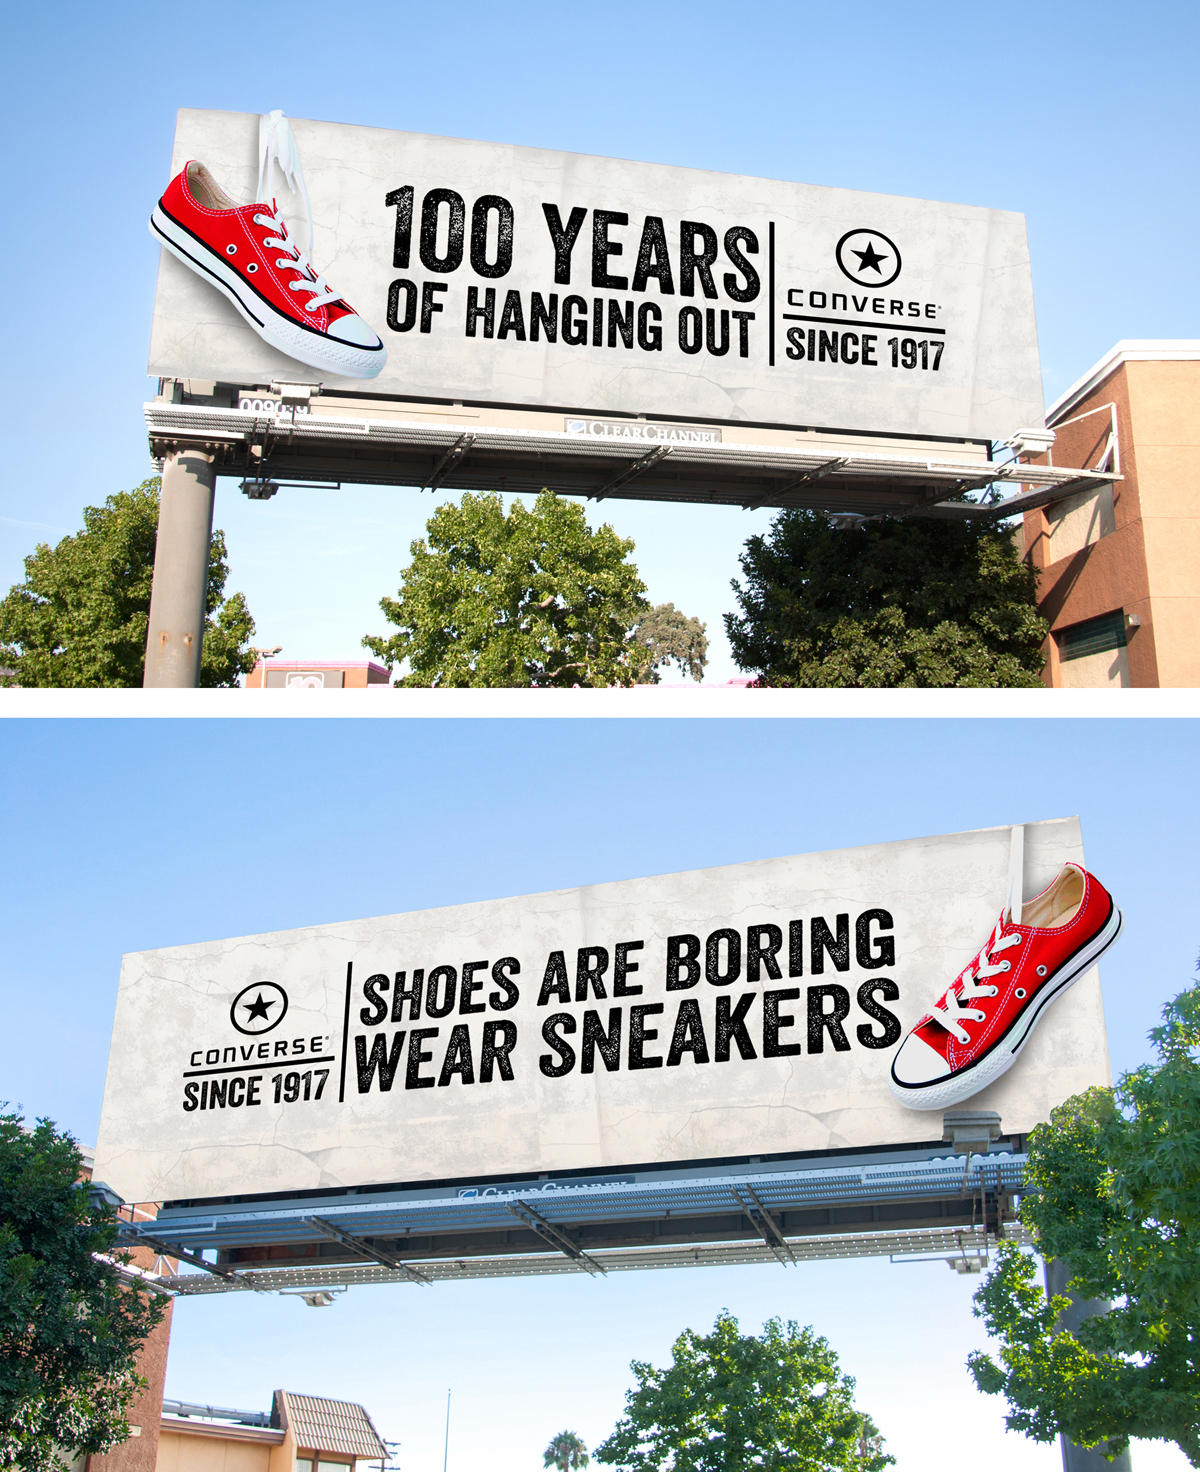 A pair of Chuck Taylors over a telephone wire is a sight seen in every urban community, and I thought there was a solid idea there.